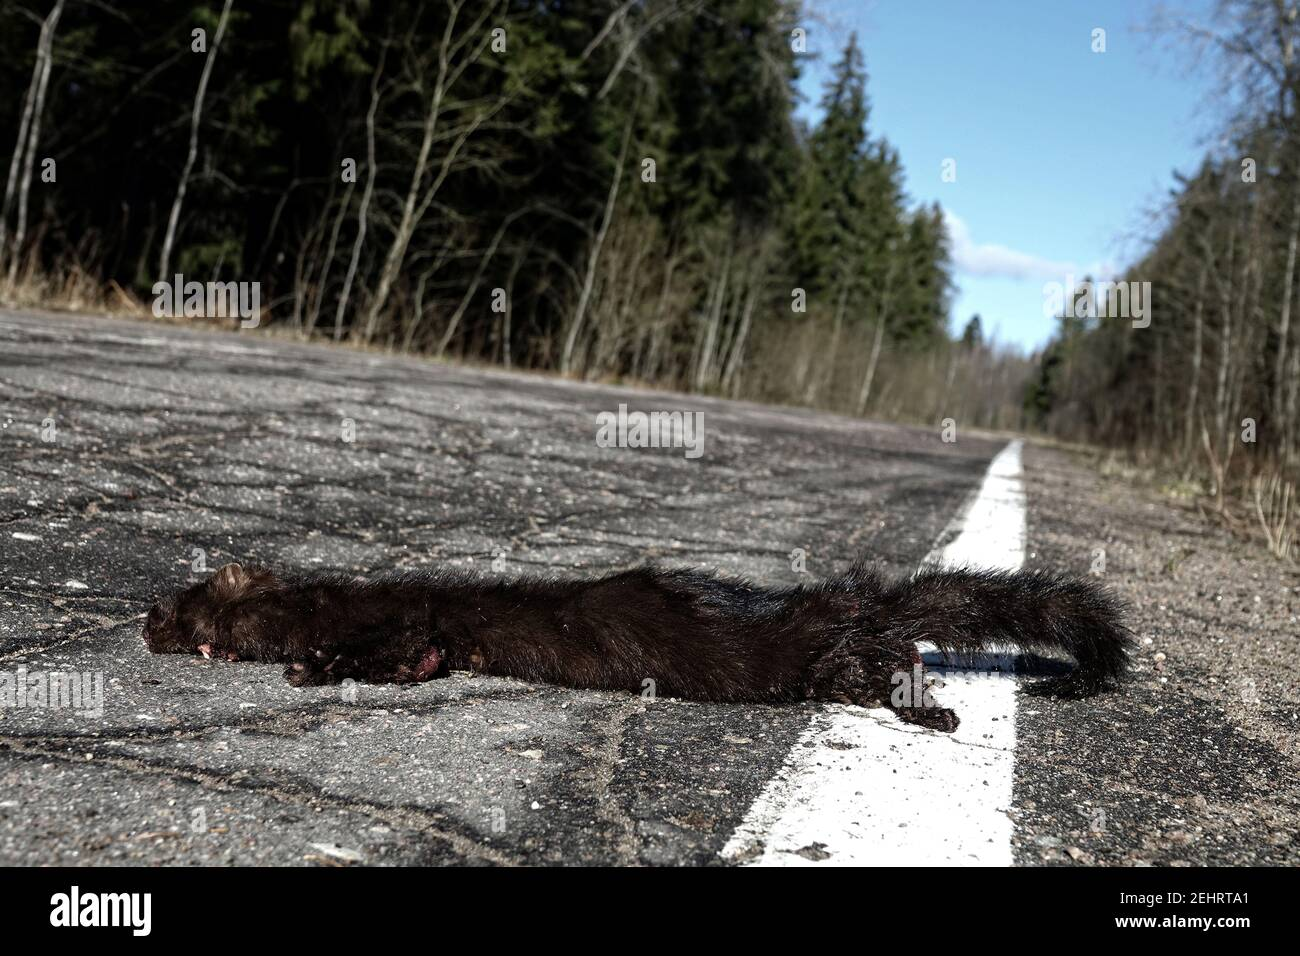 Mammals as victims of cars on roads. American mink (Mustela vison) hit by car on forest road, passing car in background. Every day millions of animals Stock Photo